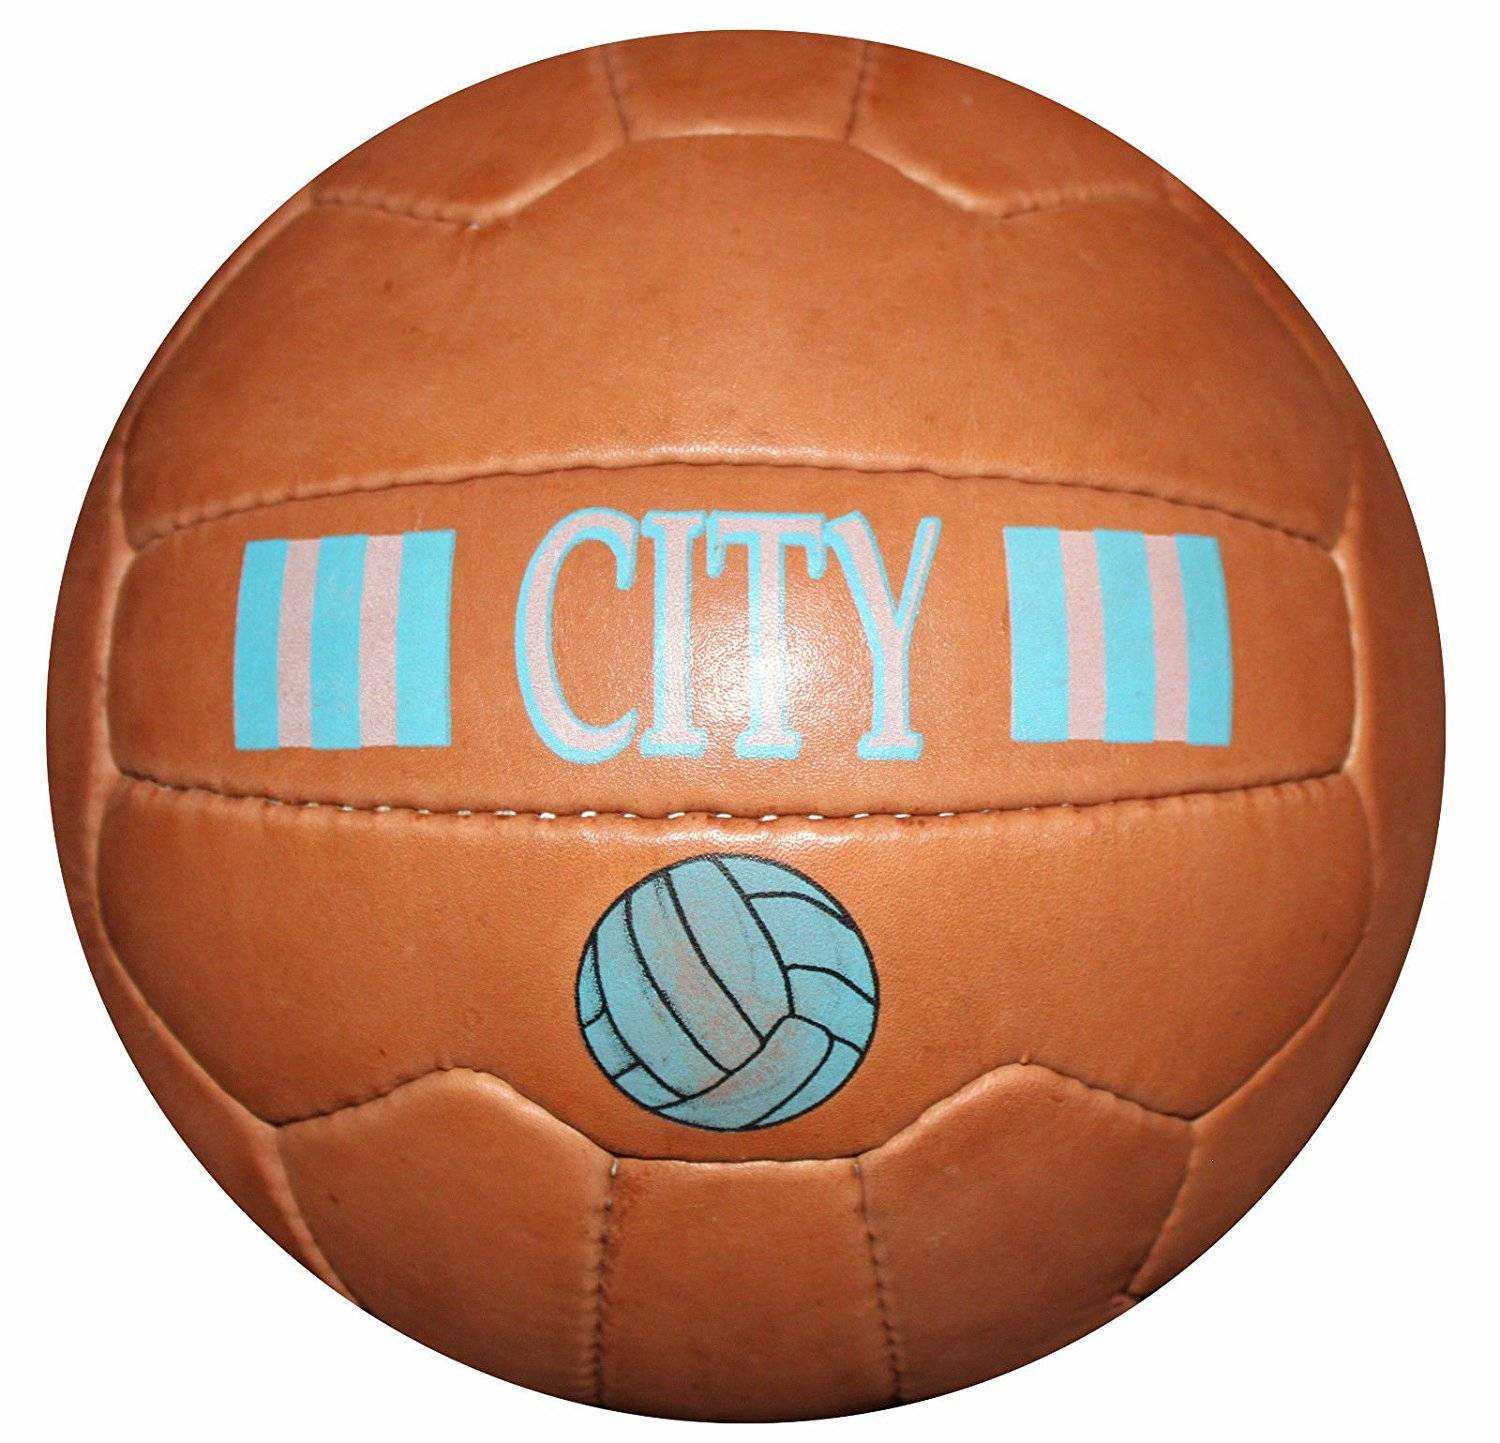 Manchester City - Vintage Leather Soccer Ball 1966 -- 100% leather